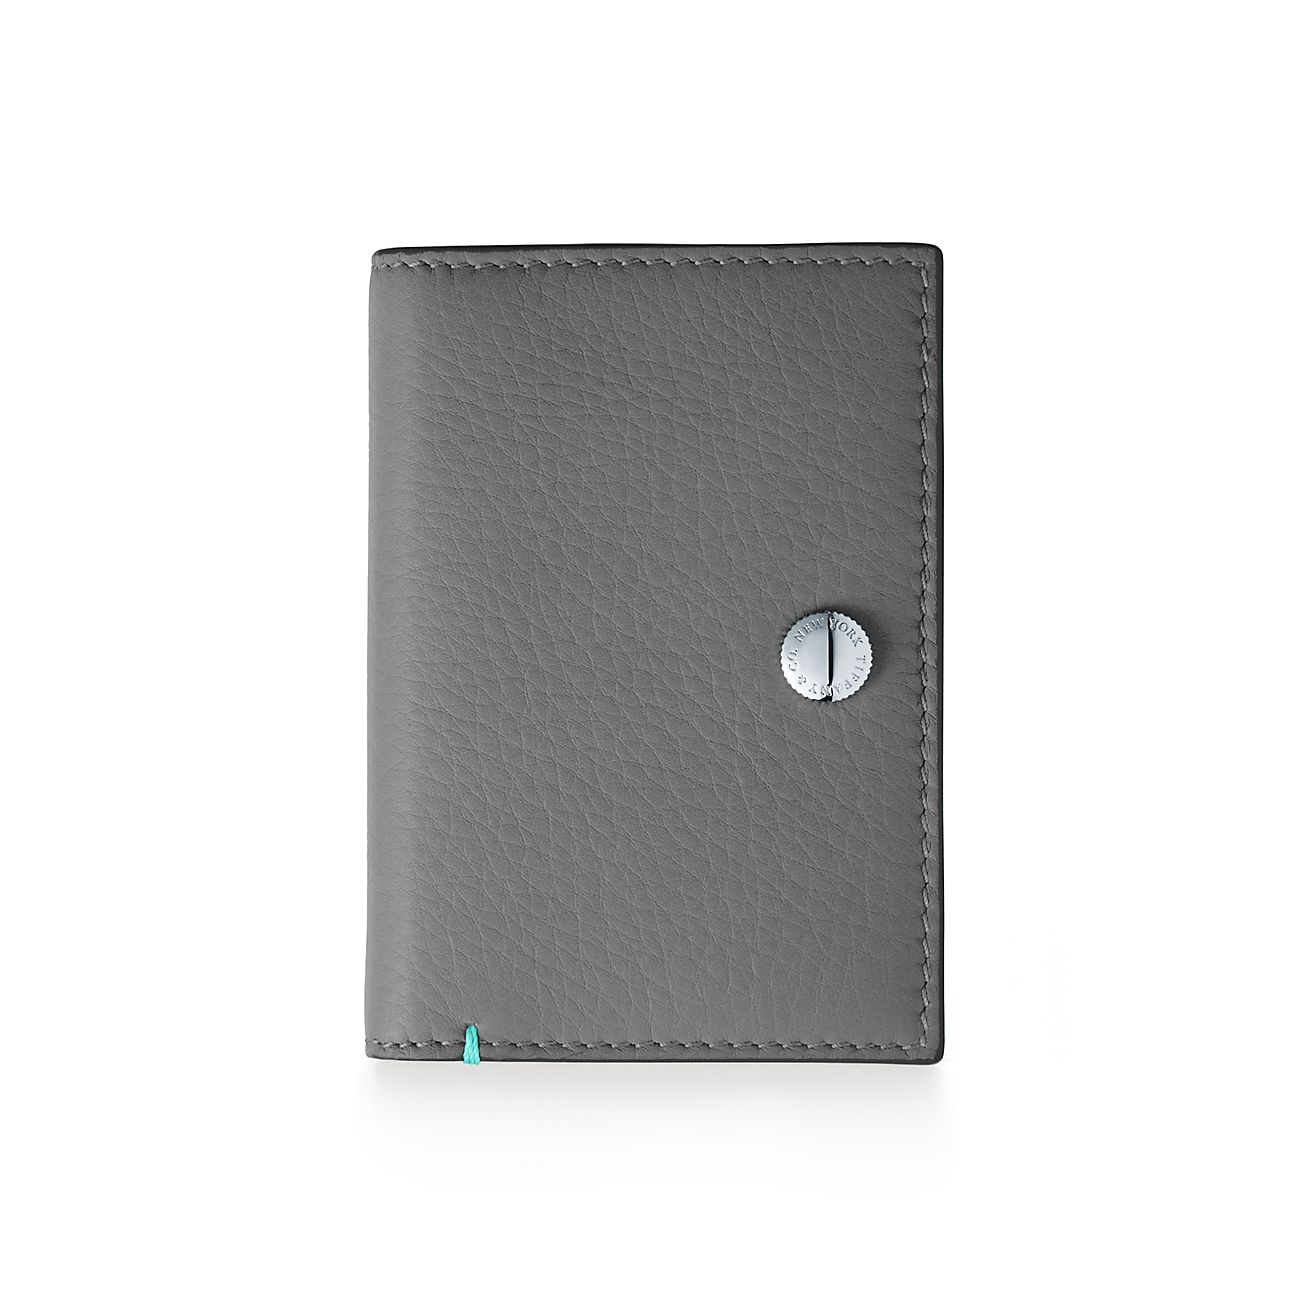 Vertical folded card case in Tiffany Blue grain calfskin leather Tiffany & Co.